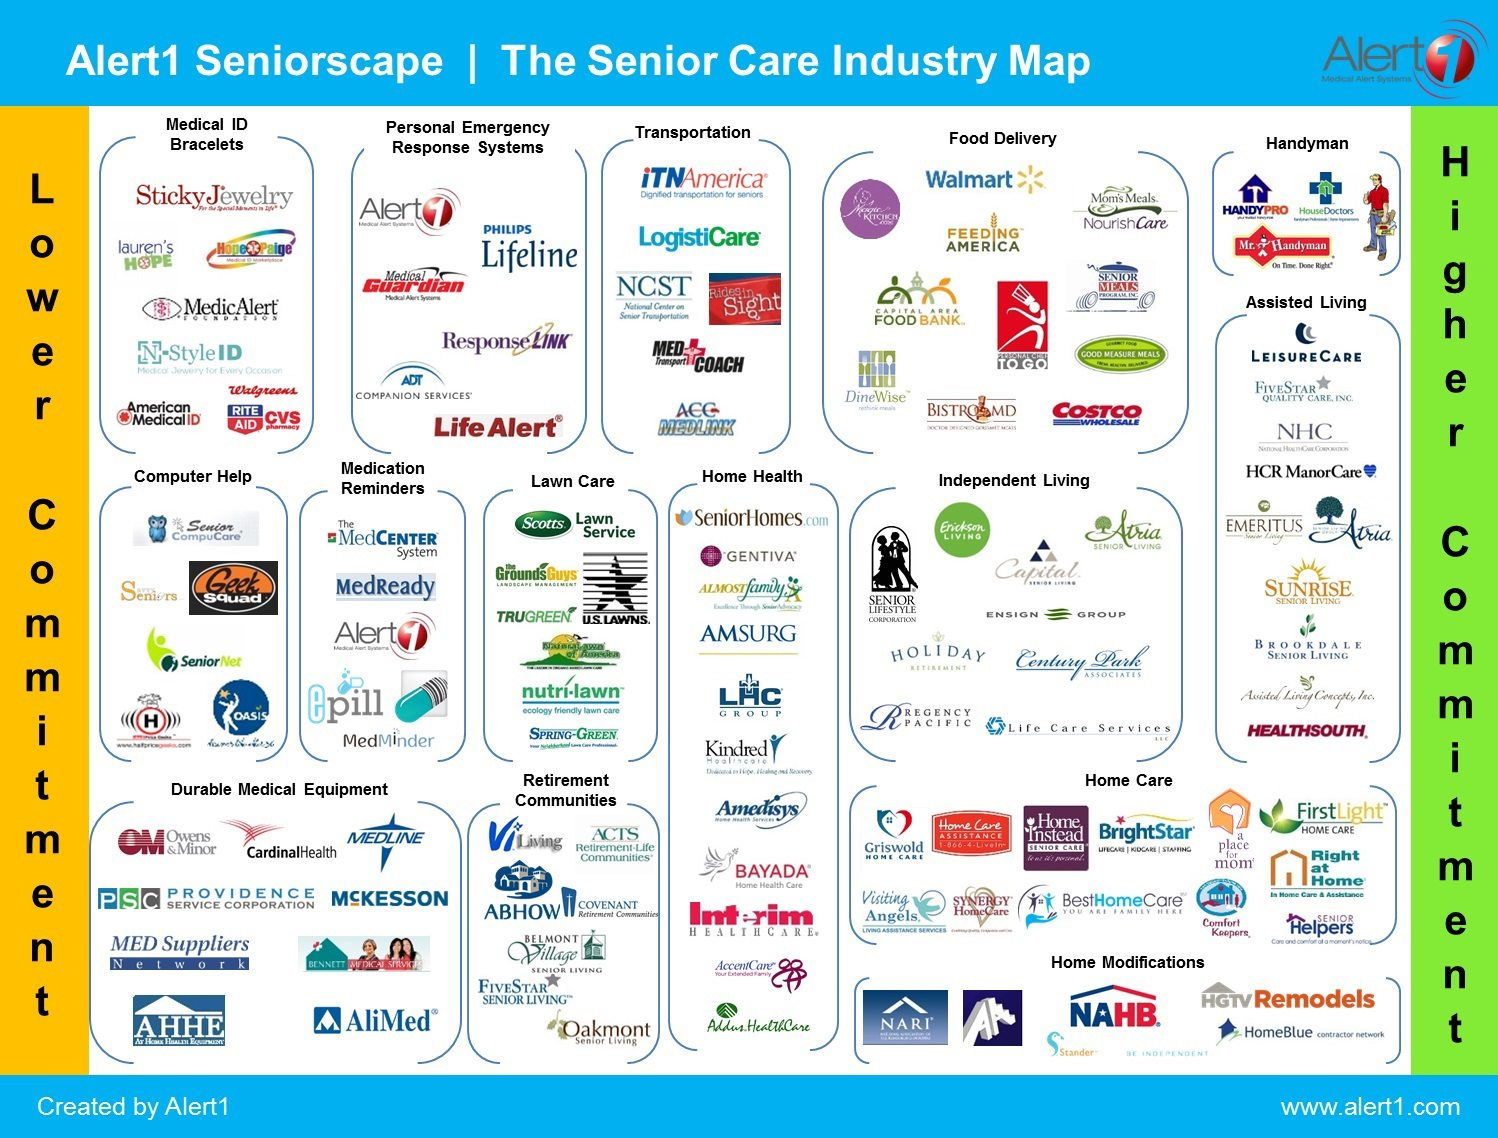 This Amazing Senior Care Map Will Blow Your Mind